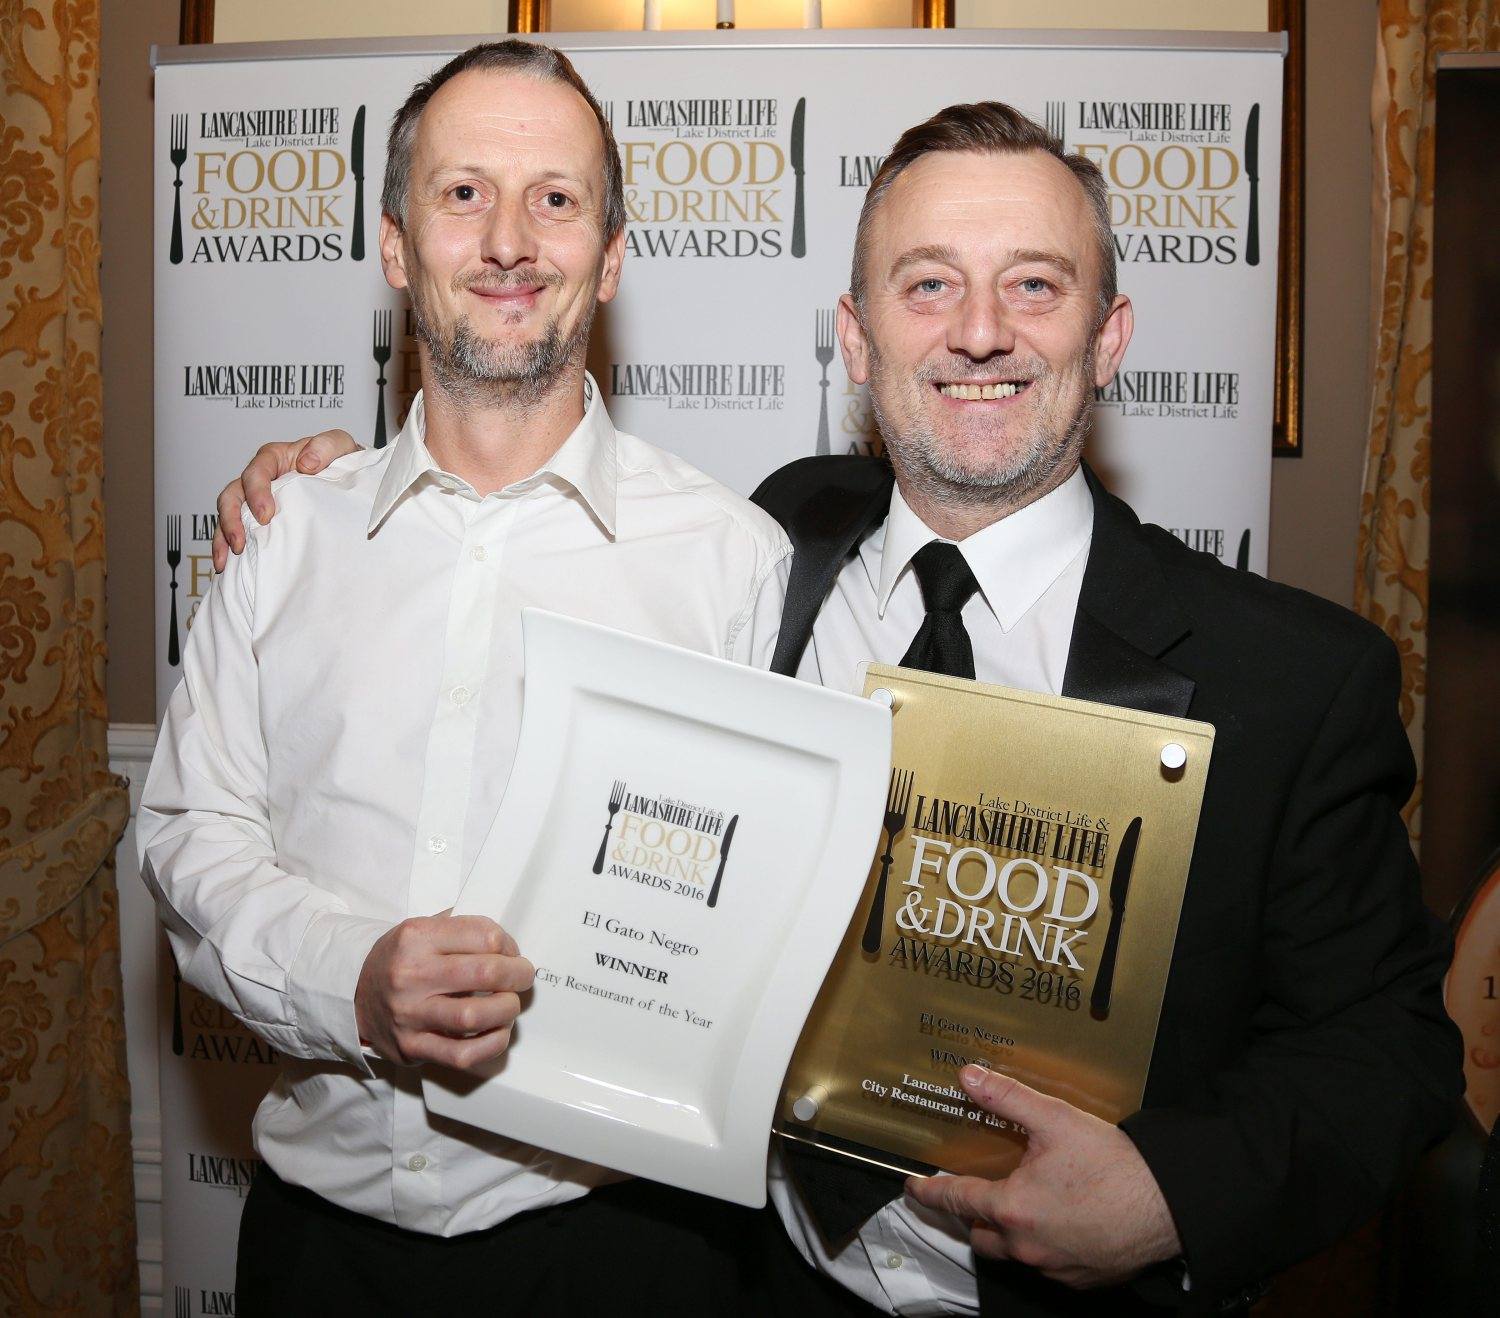 City Restaurant of the Year winner was El Gato Negro, Manchester. Photographed here are Richard Jones and Simon Shaw